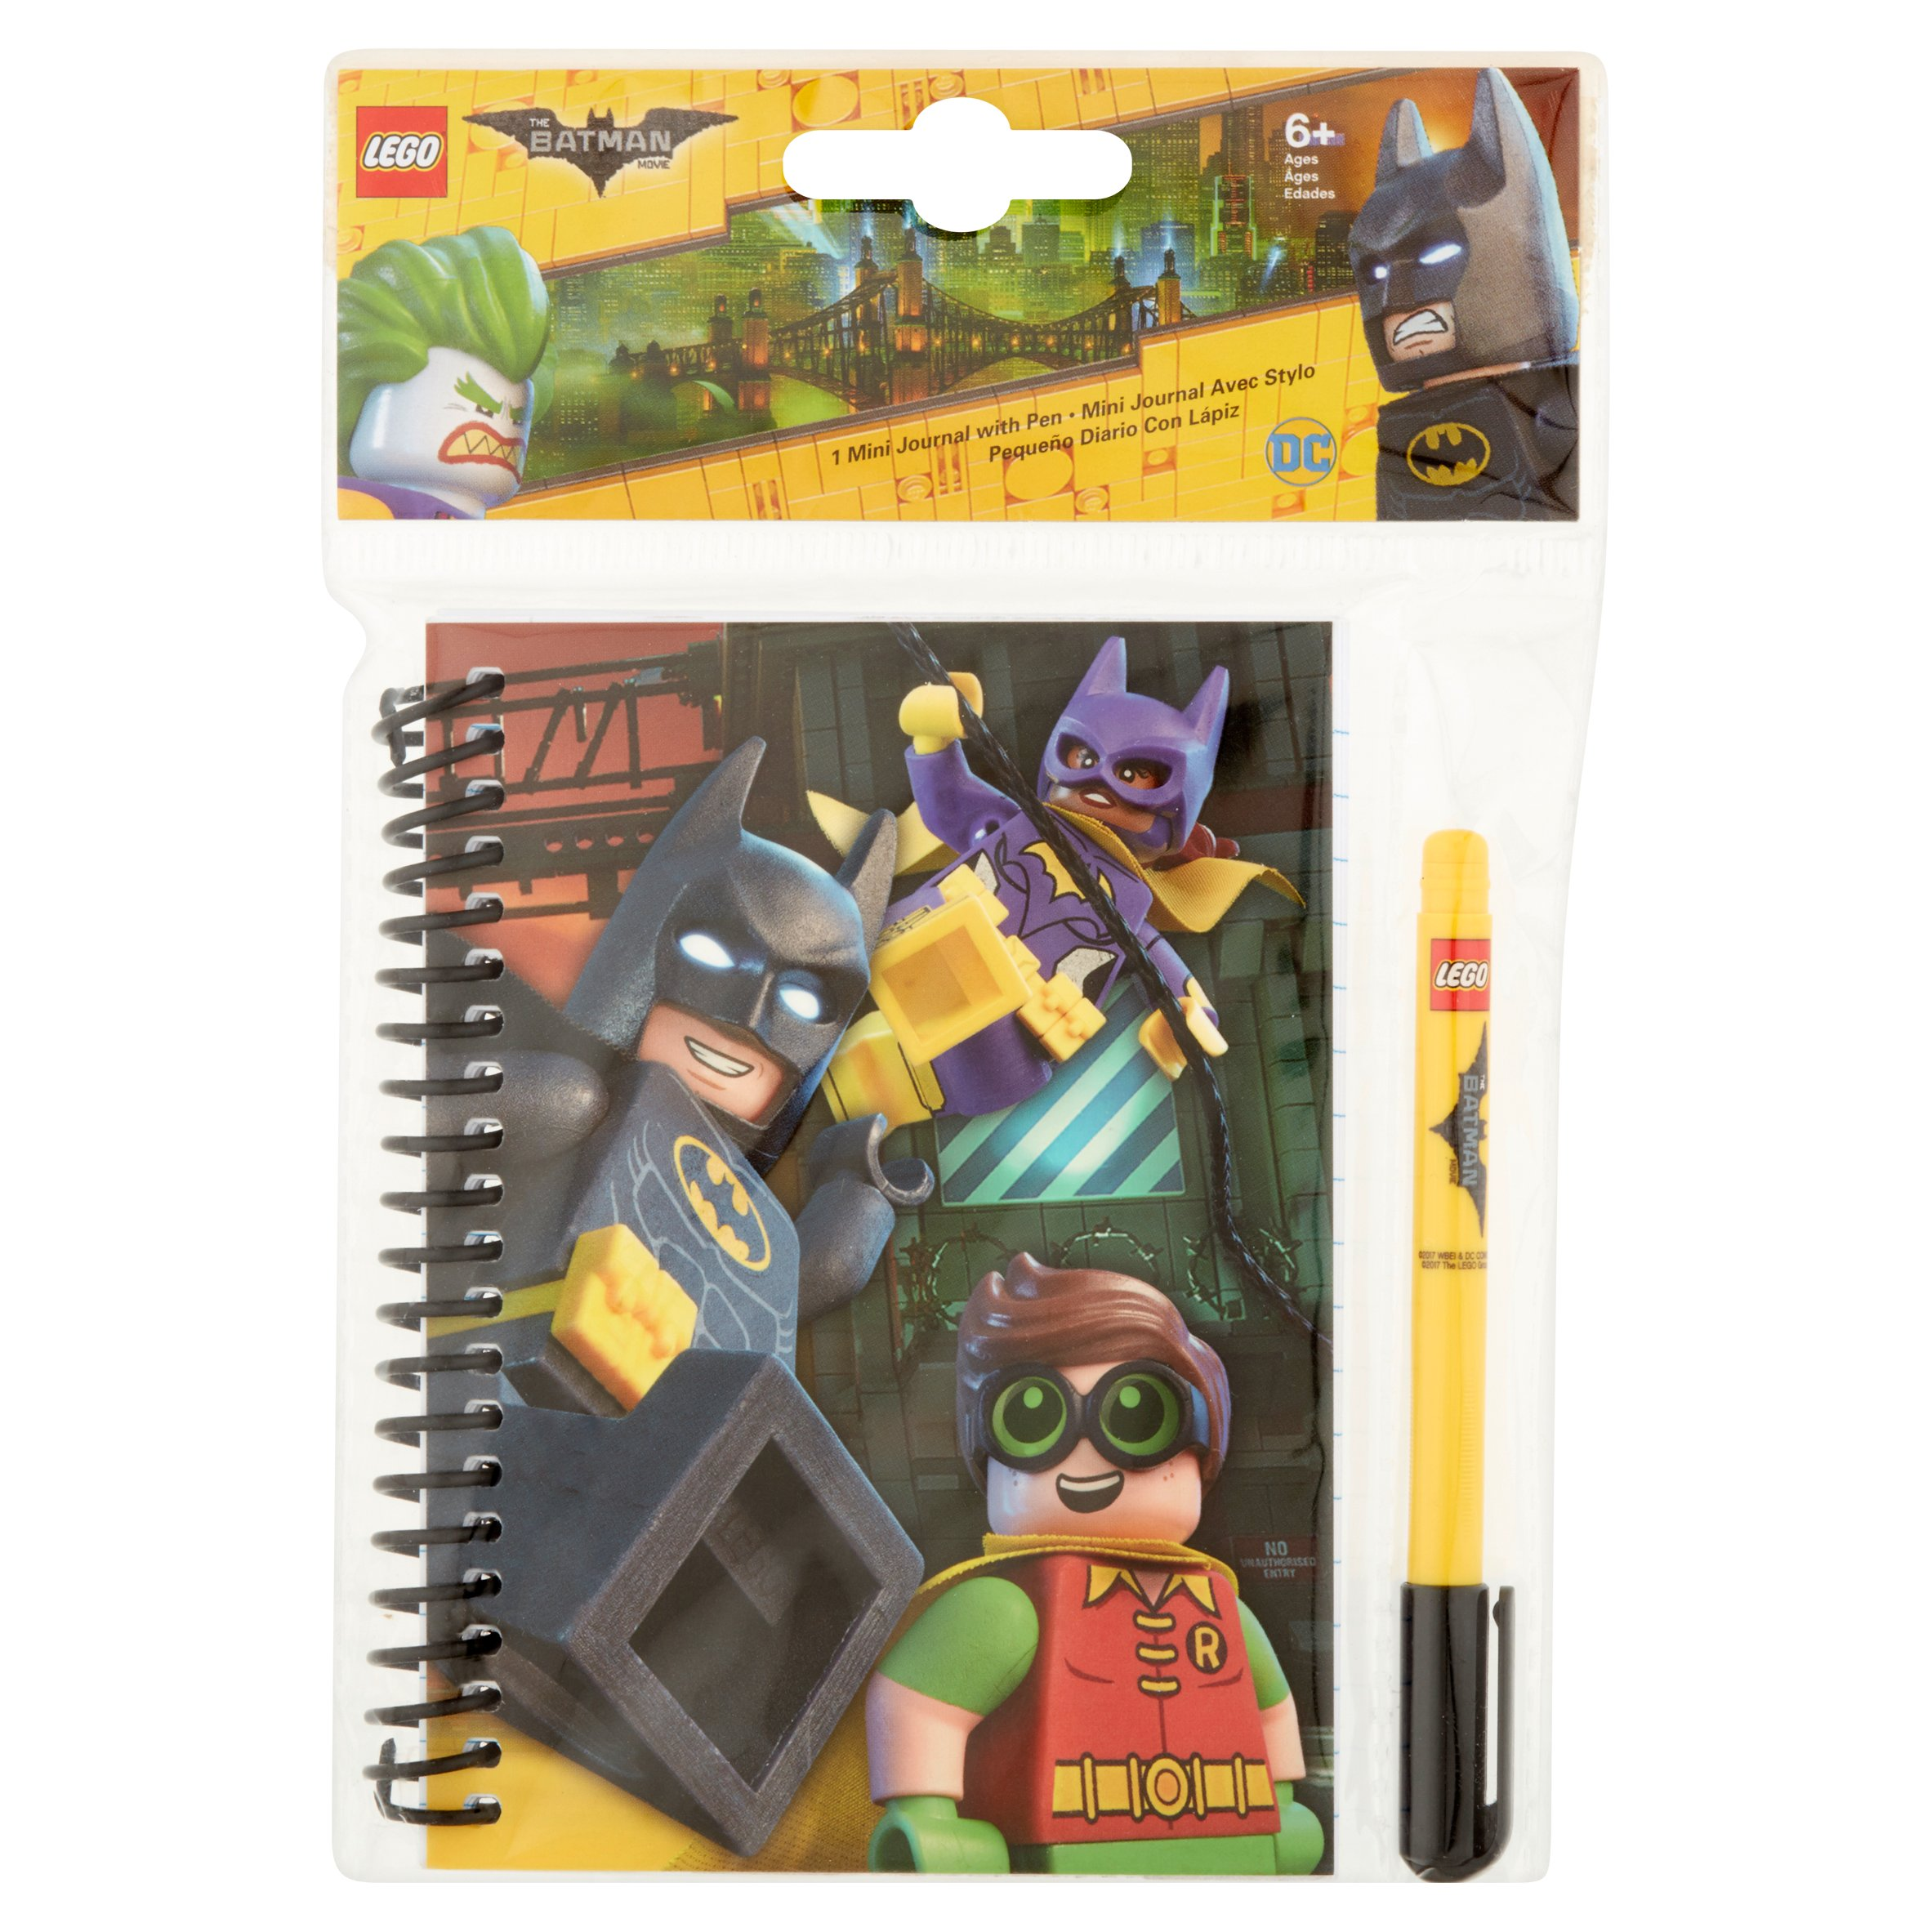 Lego DC The Batman Movie Mini Journal with Pen 6+ Ages